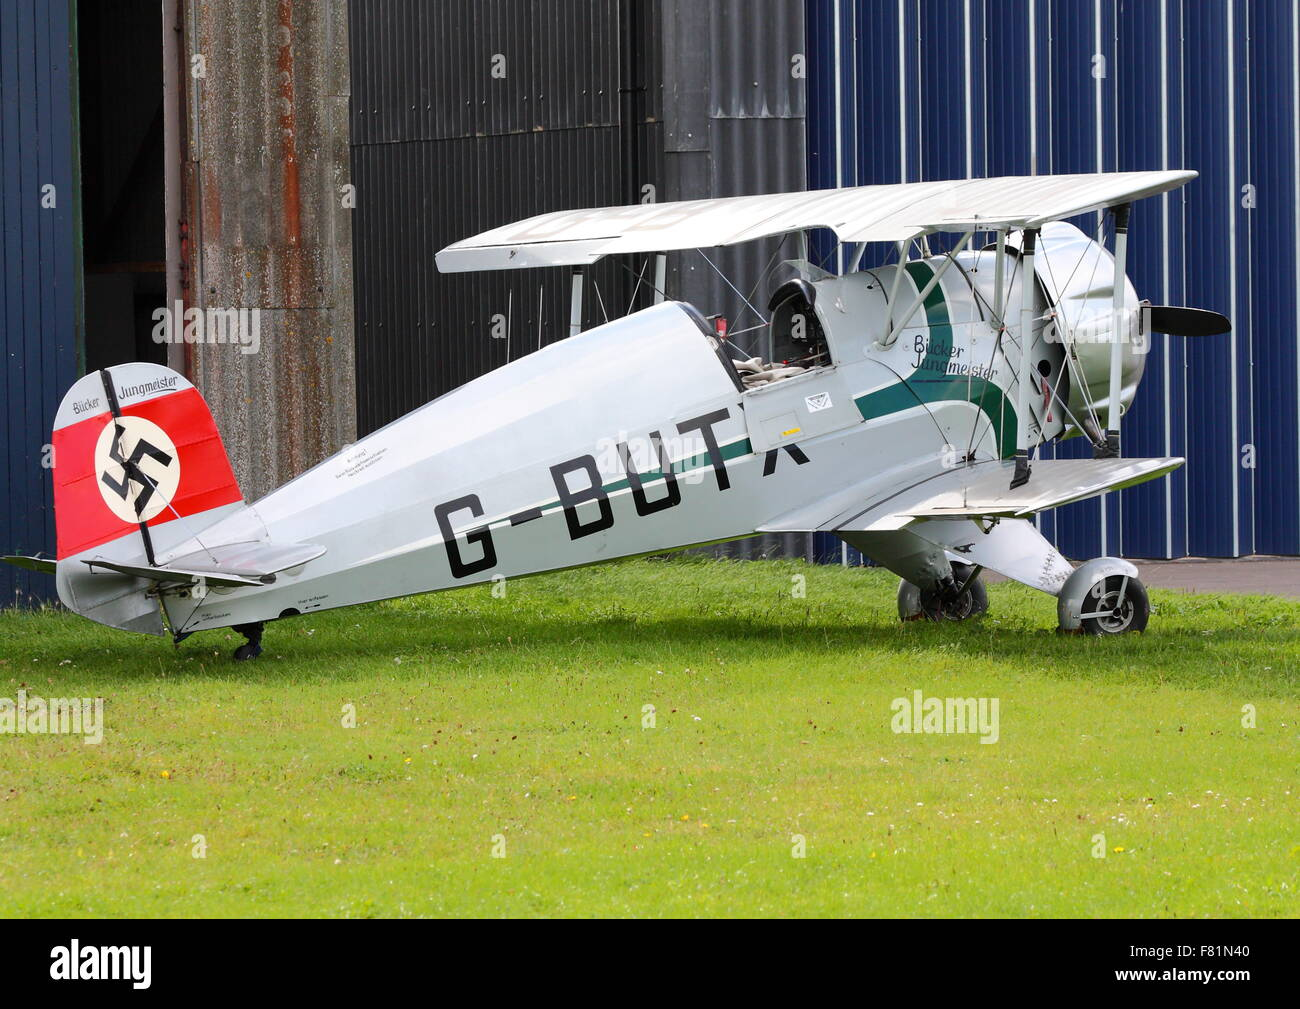 Buecker Jungmeister G-BUTX parked at White Waltham Airfield - Stock Image